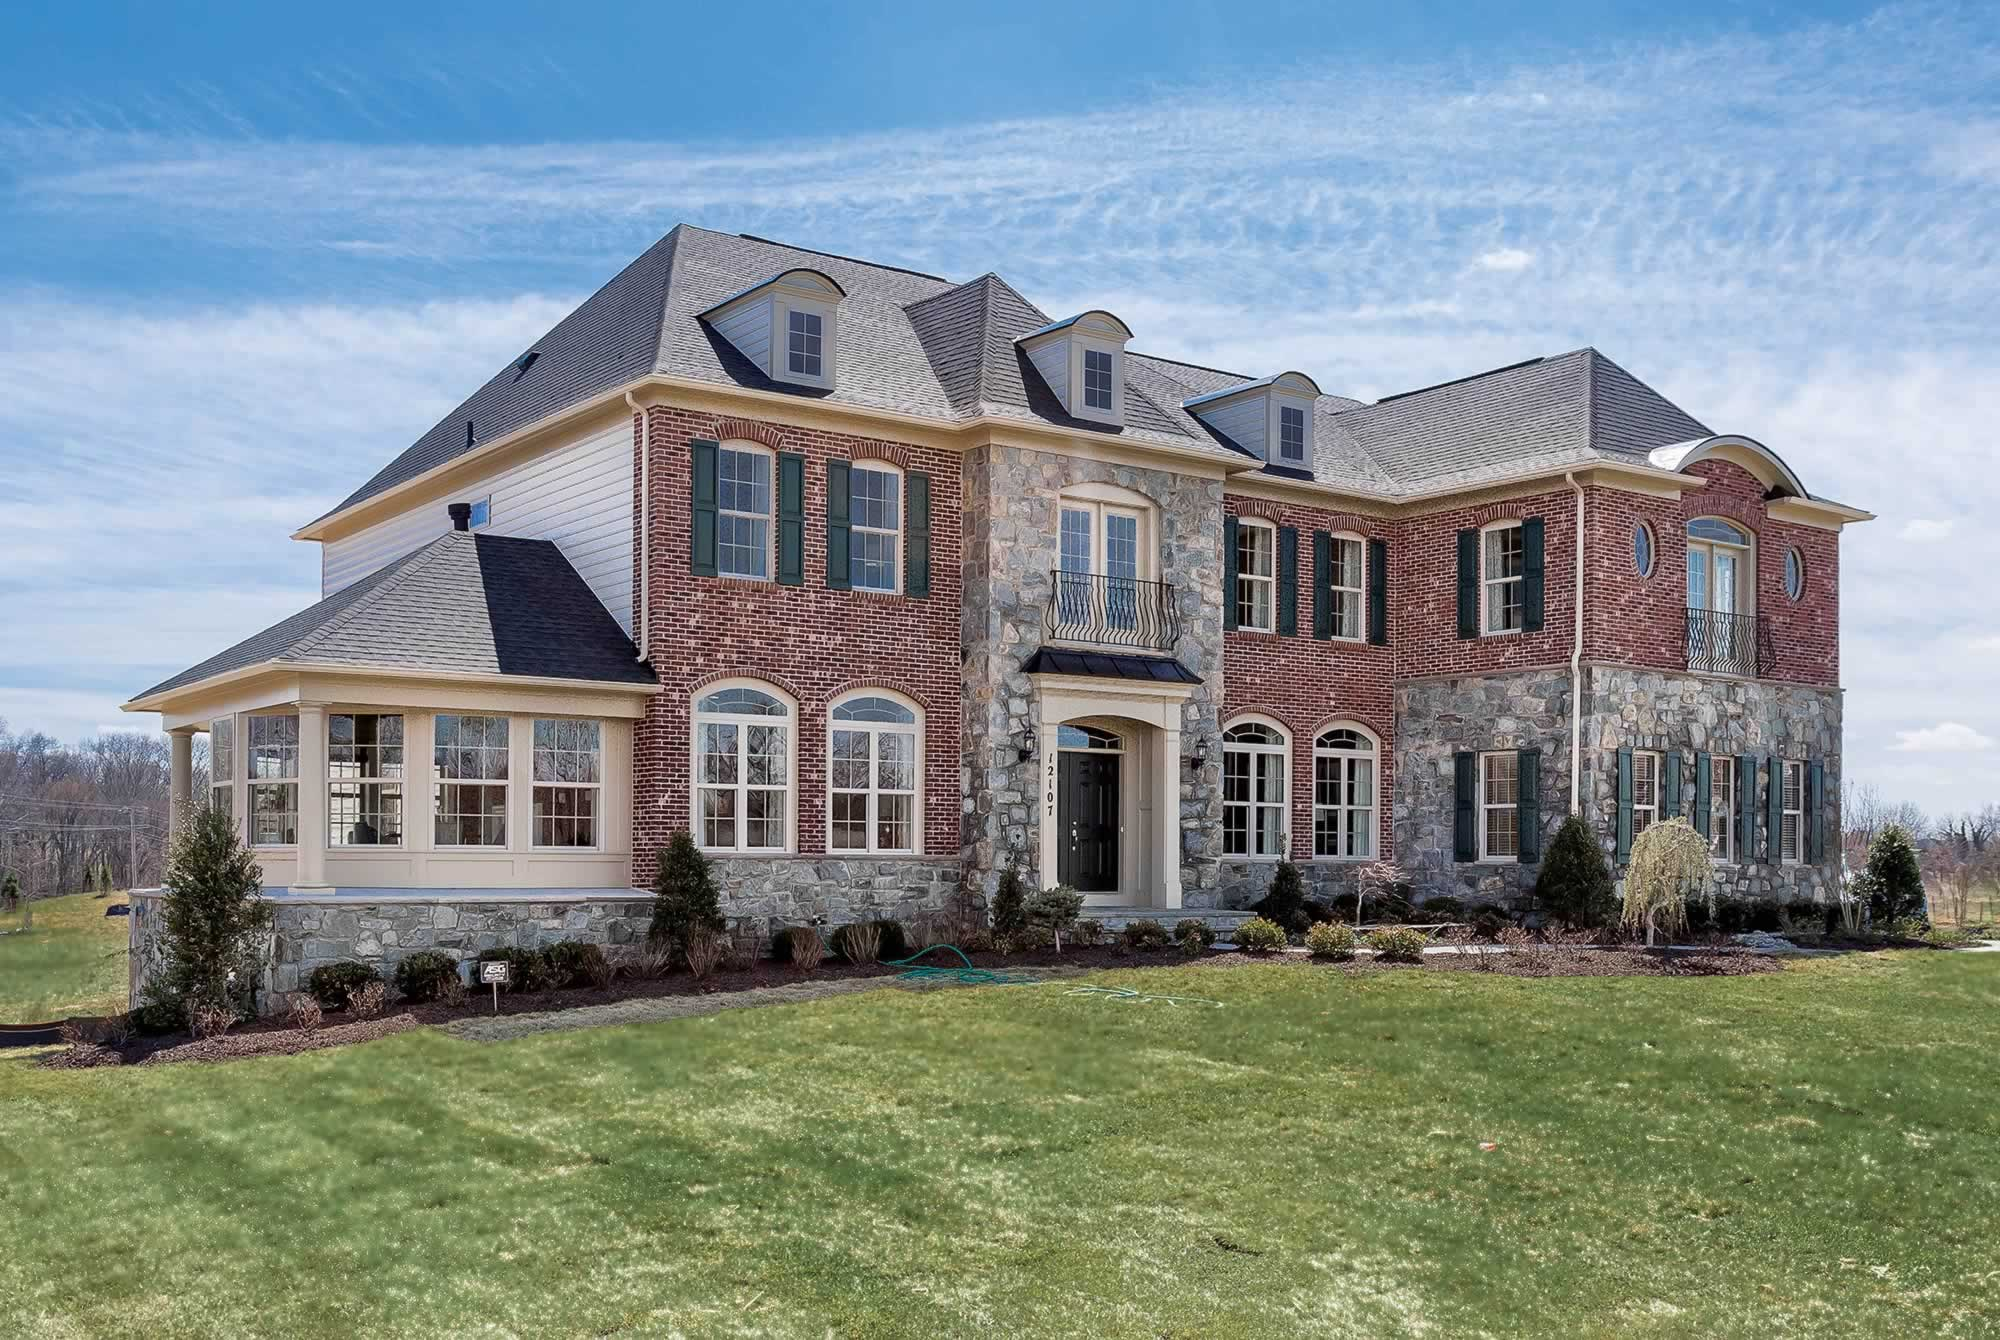 Single Family for Sale at Harmony Vista-The Oakmont 17348 Harmony Vista Drive Hamilton, Virginia 20158 United States